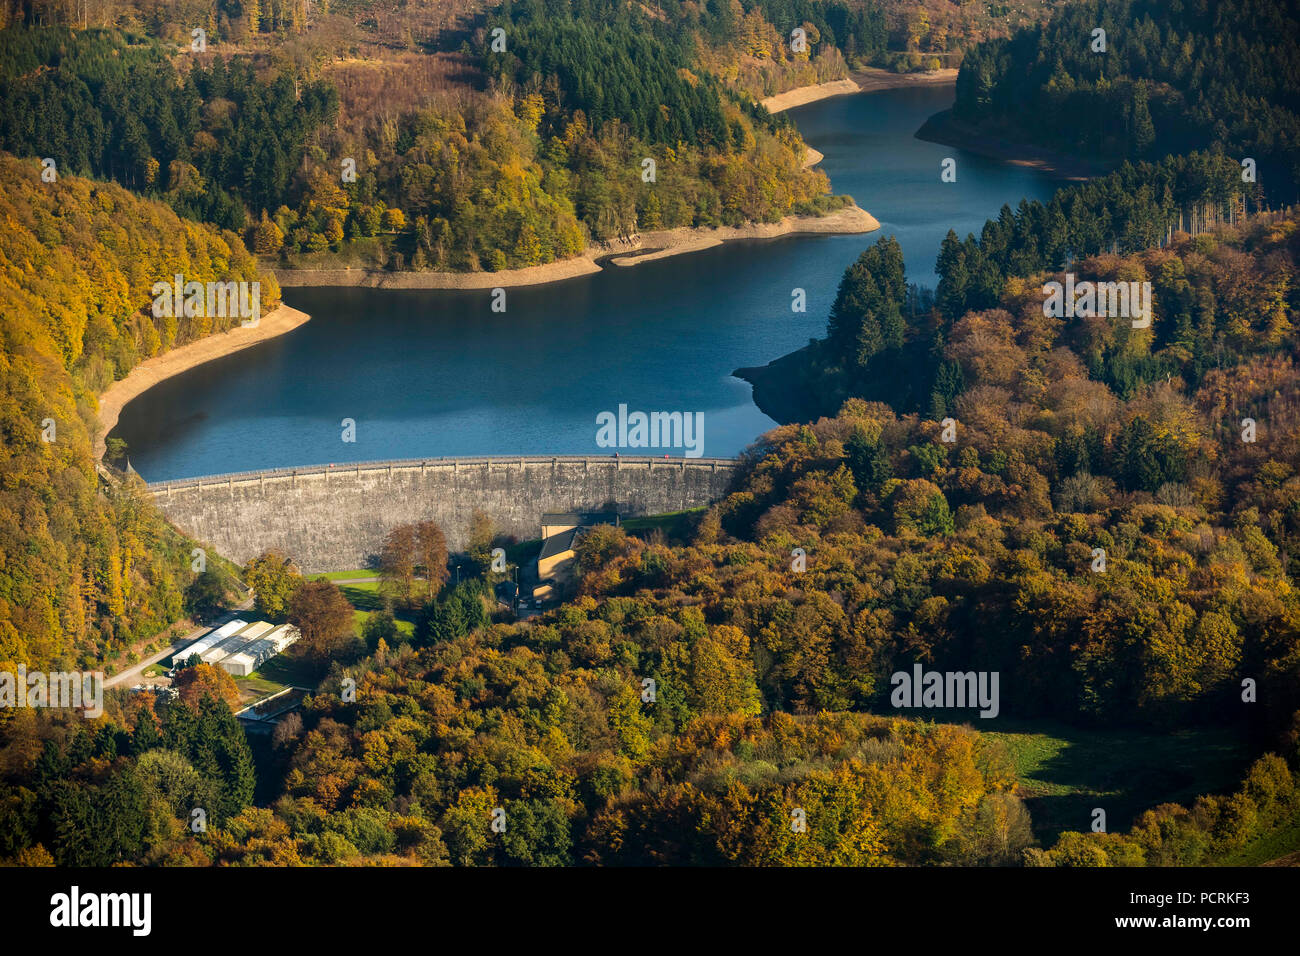 Ennepetal Dam, wall renovation and lowered water level, dam wall, repair of water regulation tower, Ennepetal, Ruhr area, North Rhine-Westphalia, Germany - Stock Image